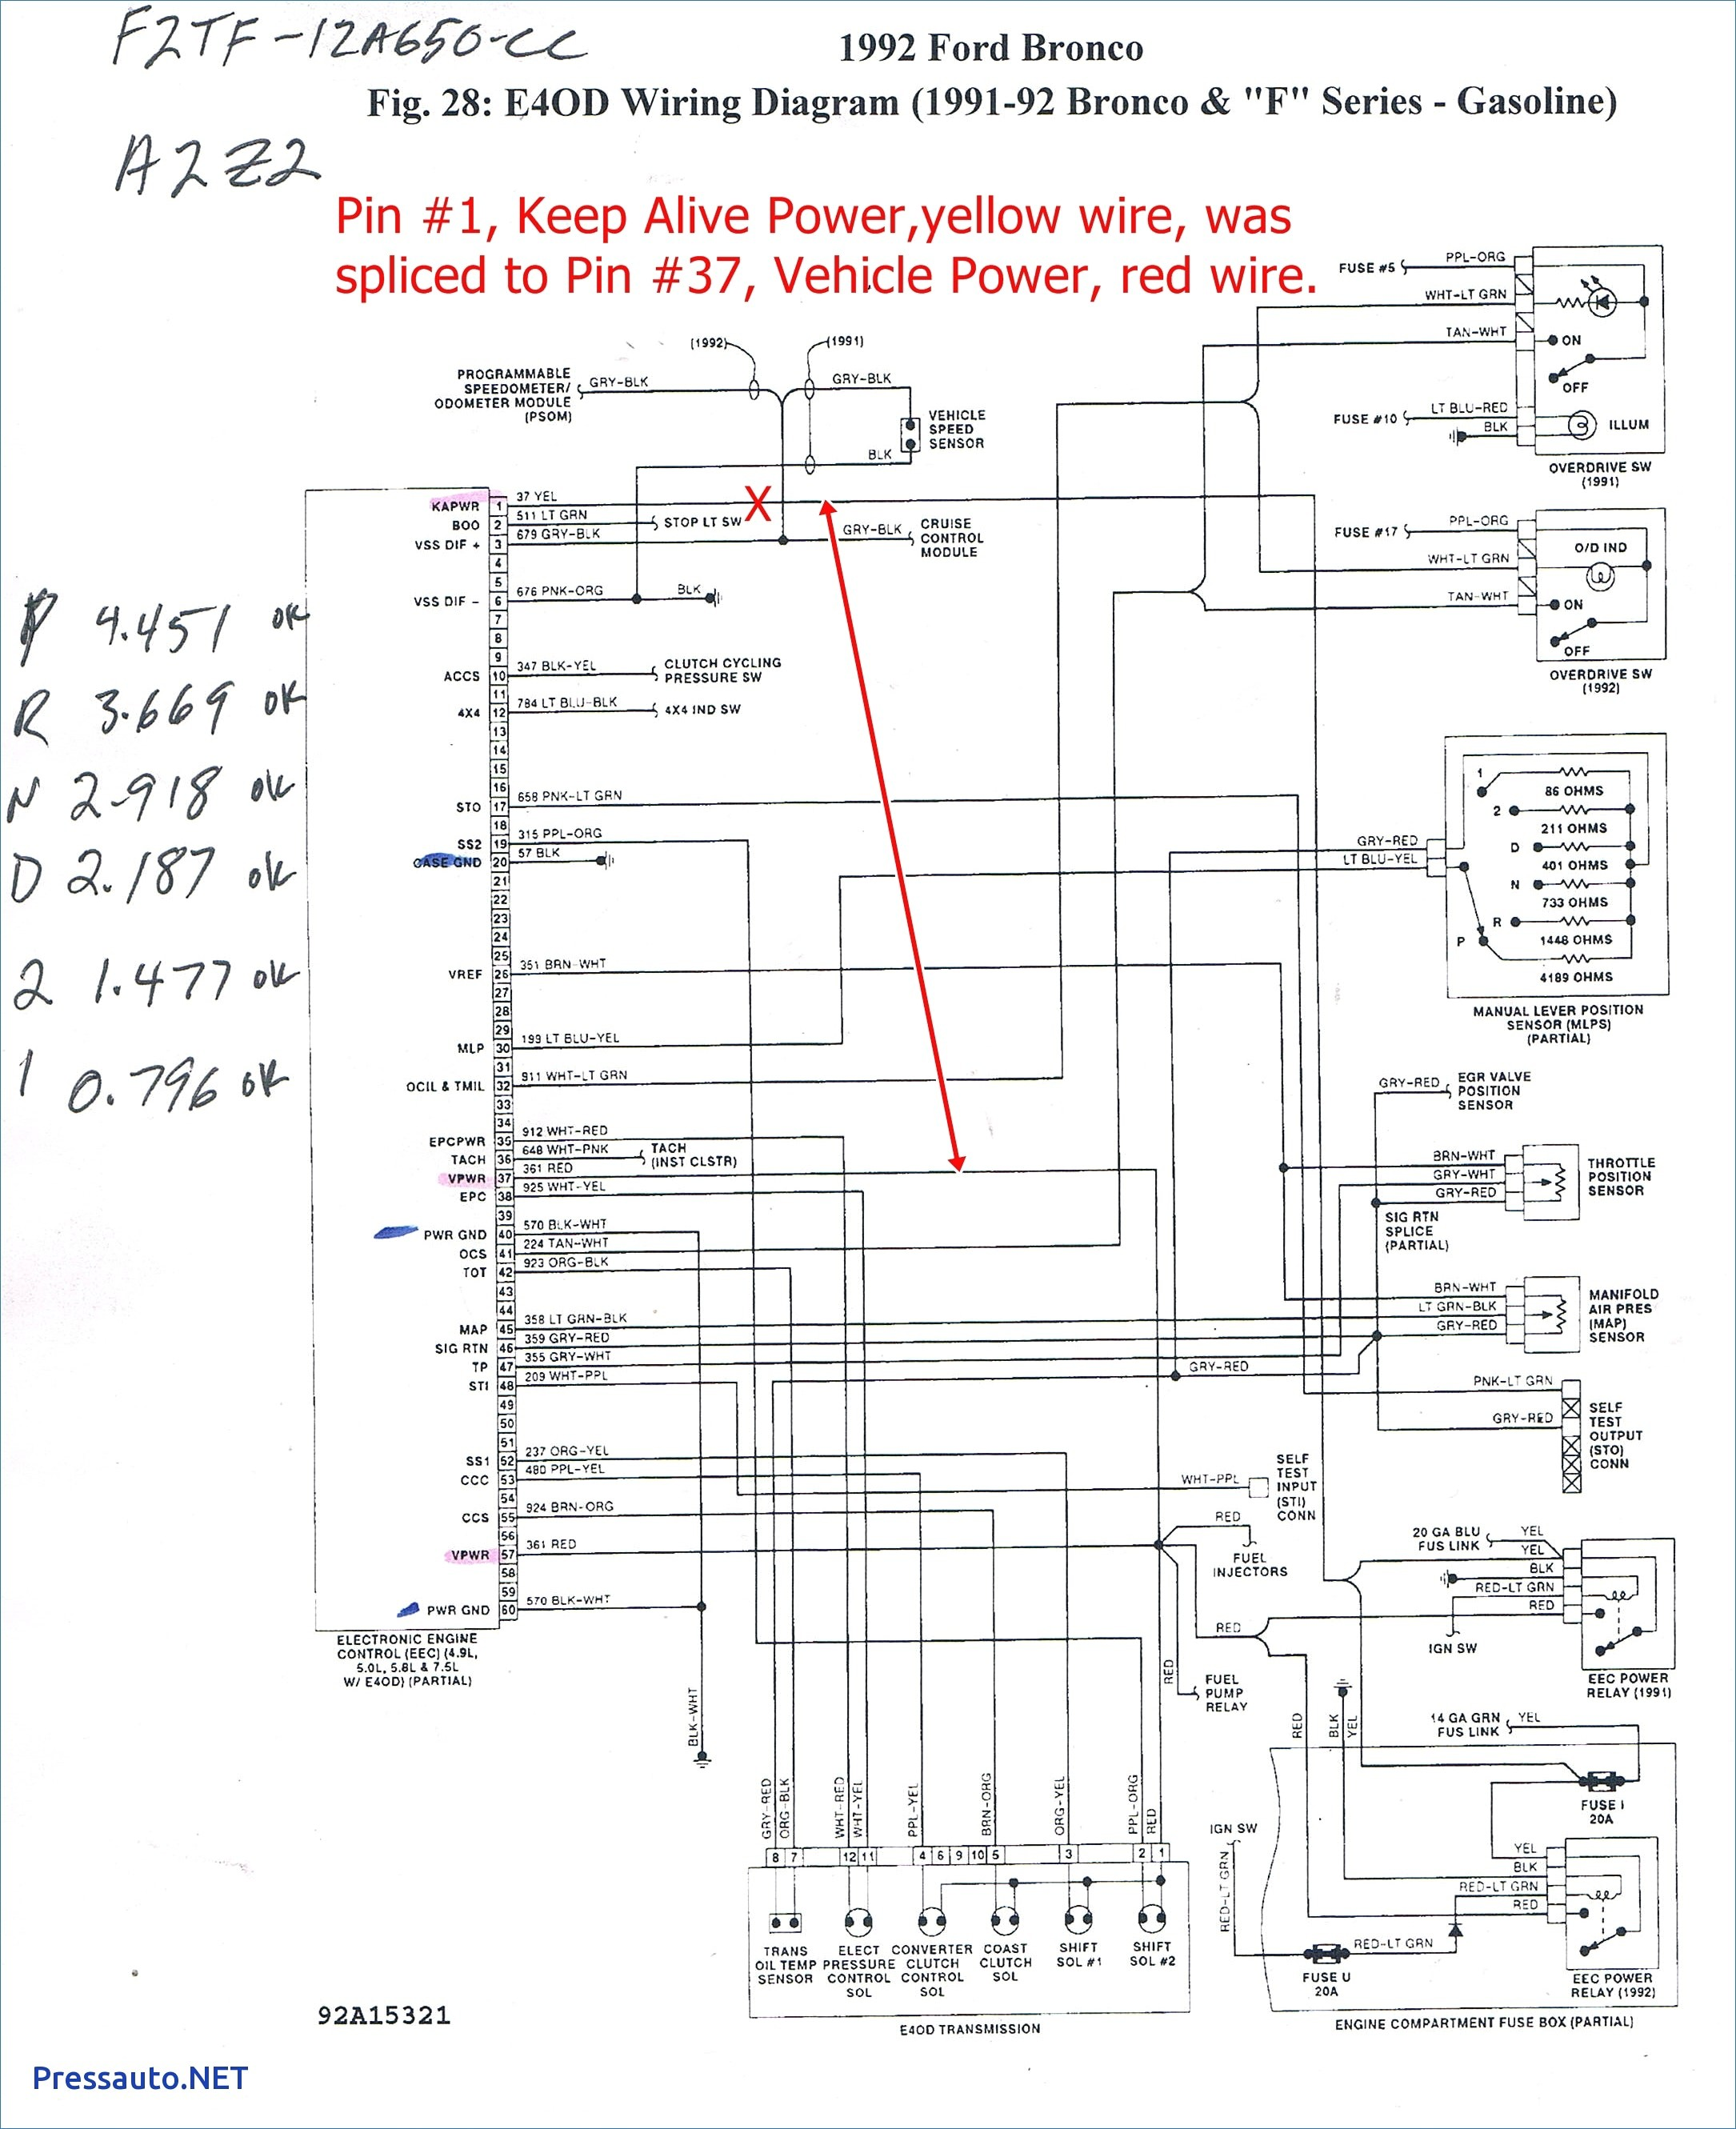 2001 Mercury Sable Wiring Diagram